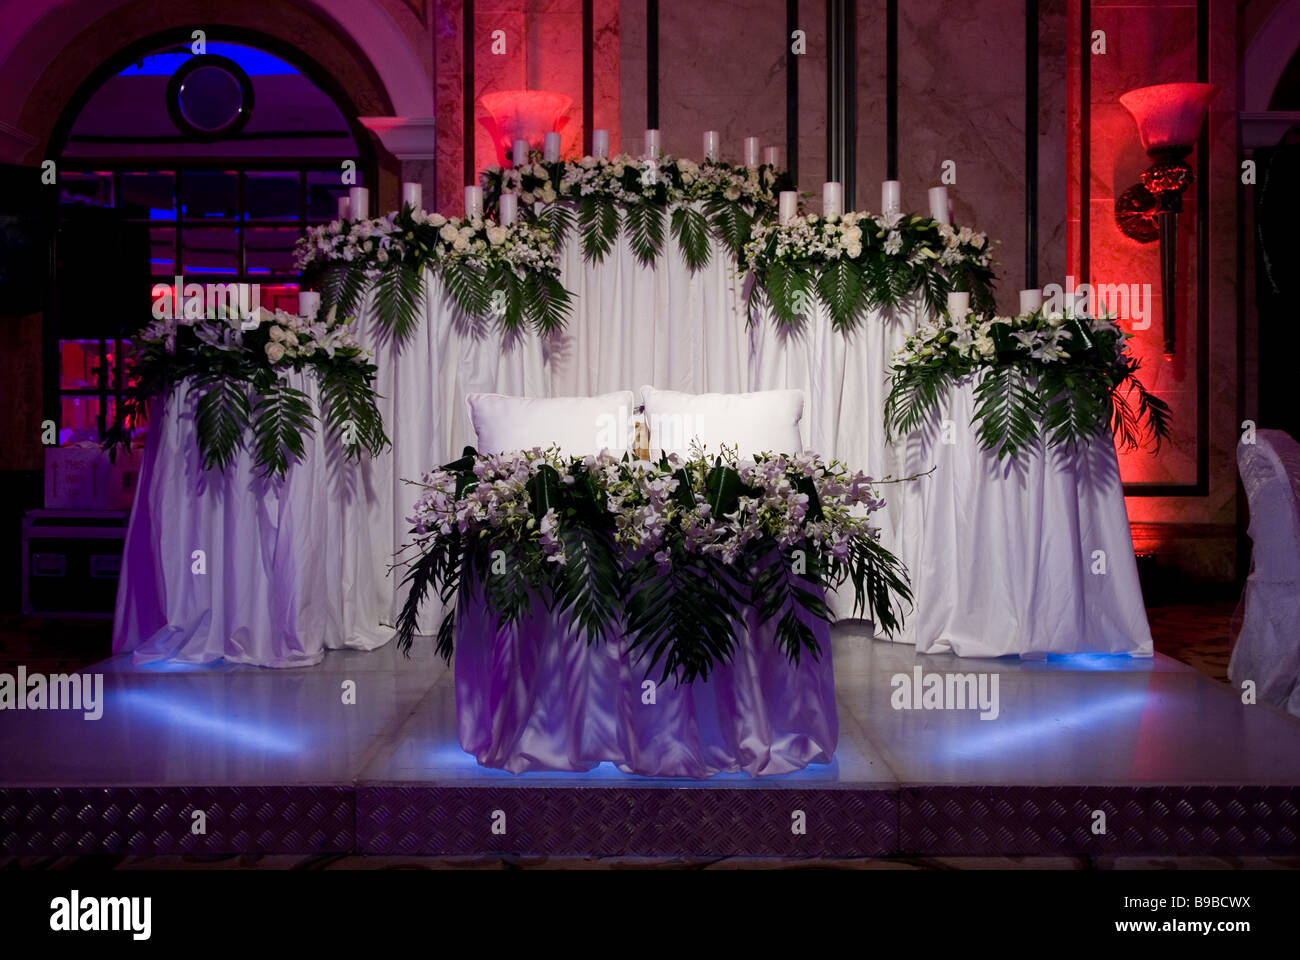 Wedding Hall Decorated With Flowers And Candles Beirut Lebanon